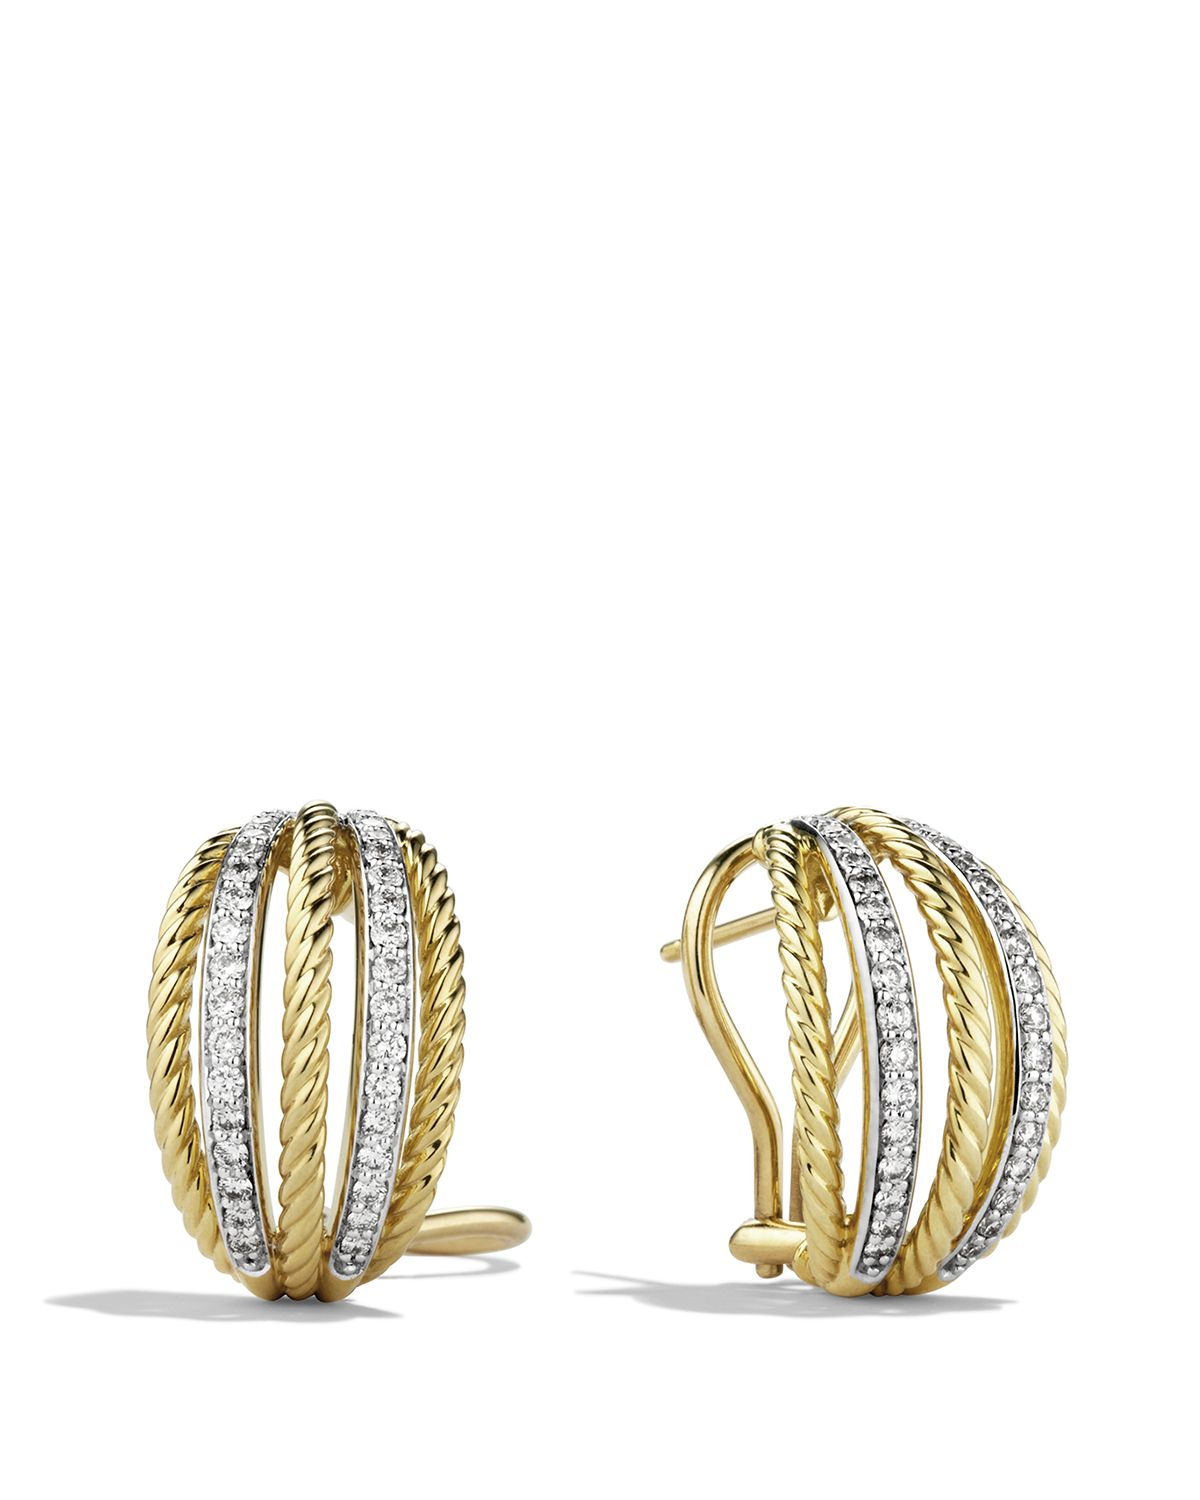 David Yurman Lantana Earrings With Diamonds In Gold In